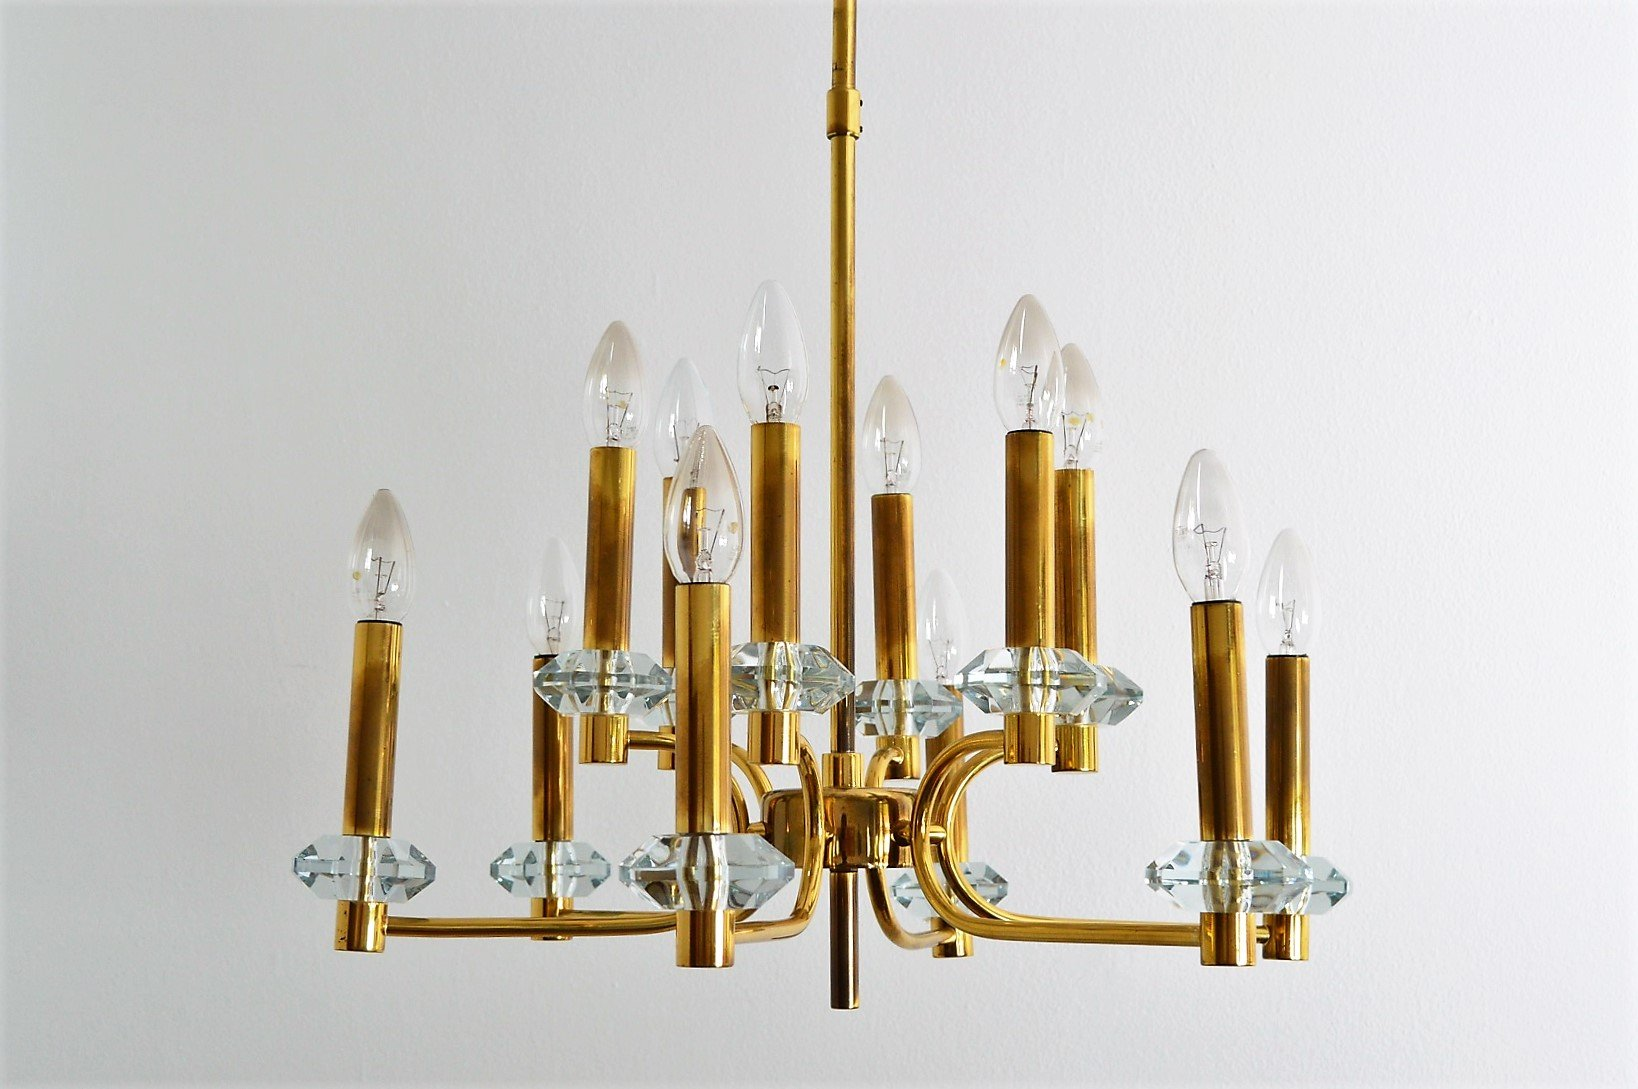 Vintage brass and glass chandelier with 12 lights 1960s for sale vintage brass and glass chandelier with 12 lights 1960s for sale at pamono mozeypictures Images